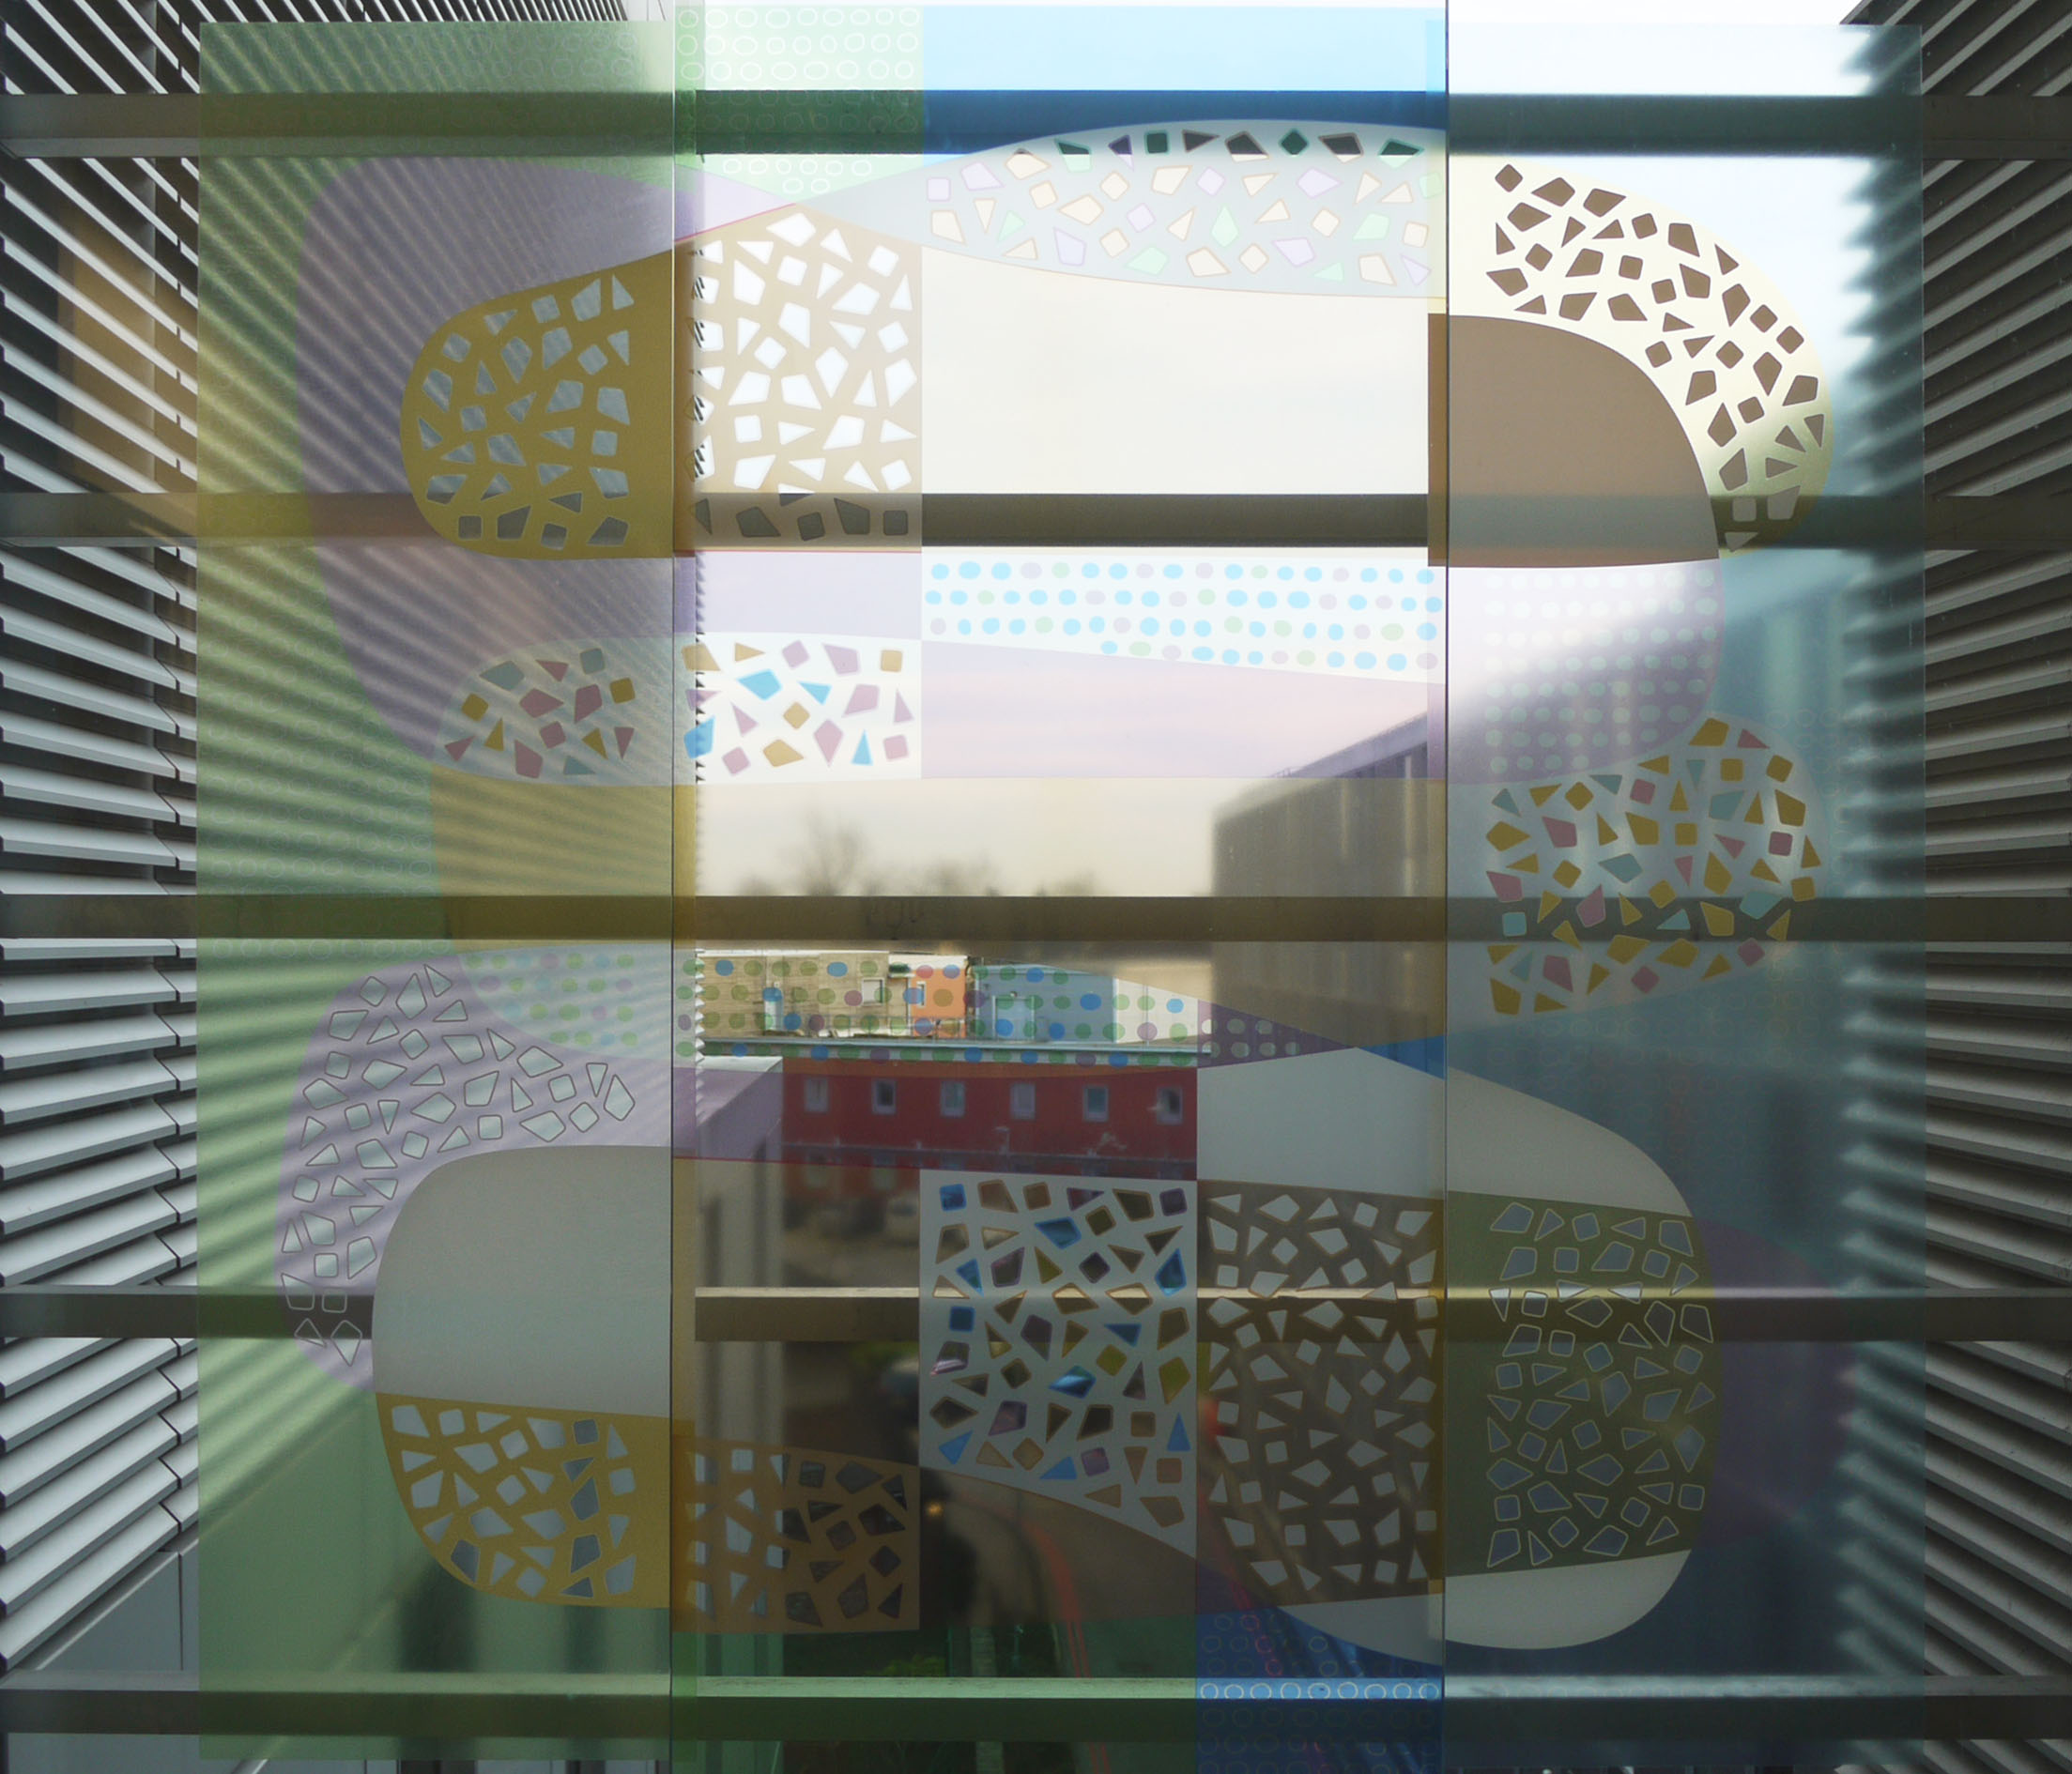 Vinyl/glass/vinyl window at Manchester Children's Hospital: 1800 mm square.